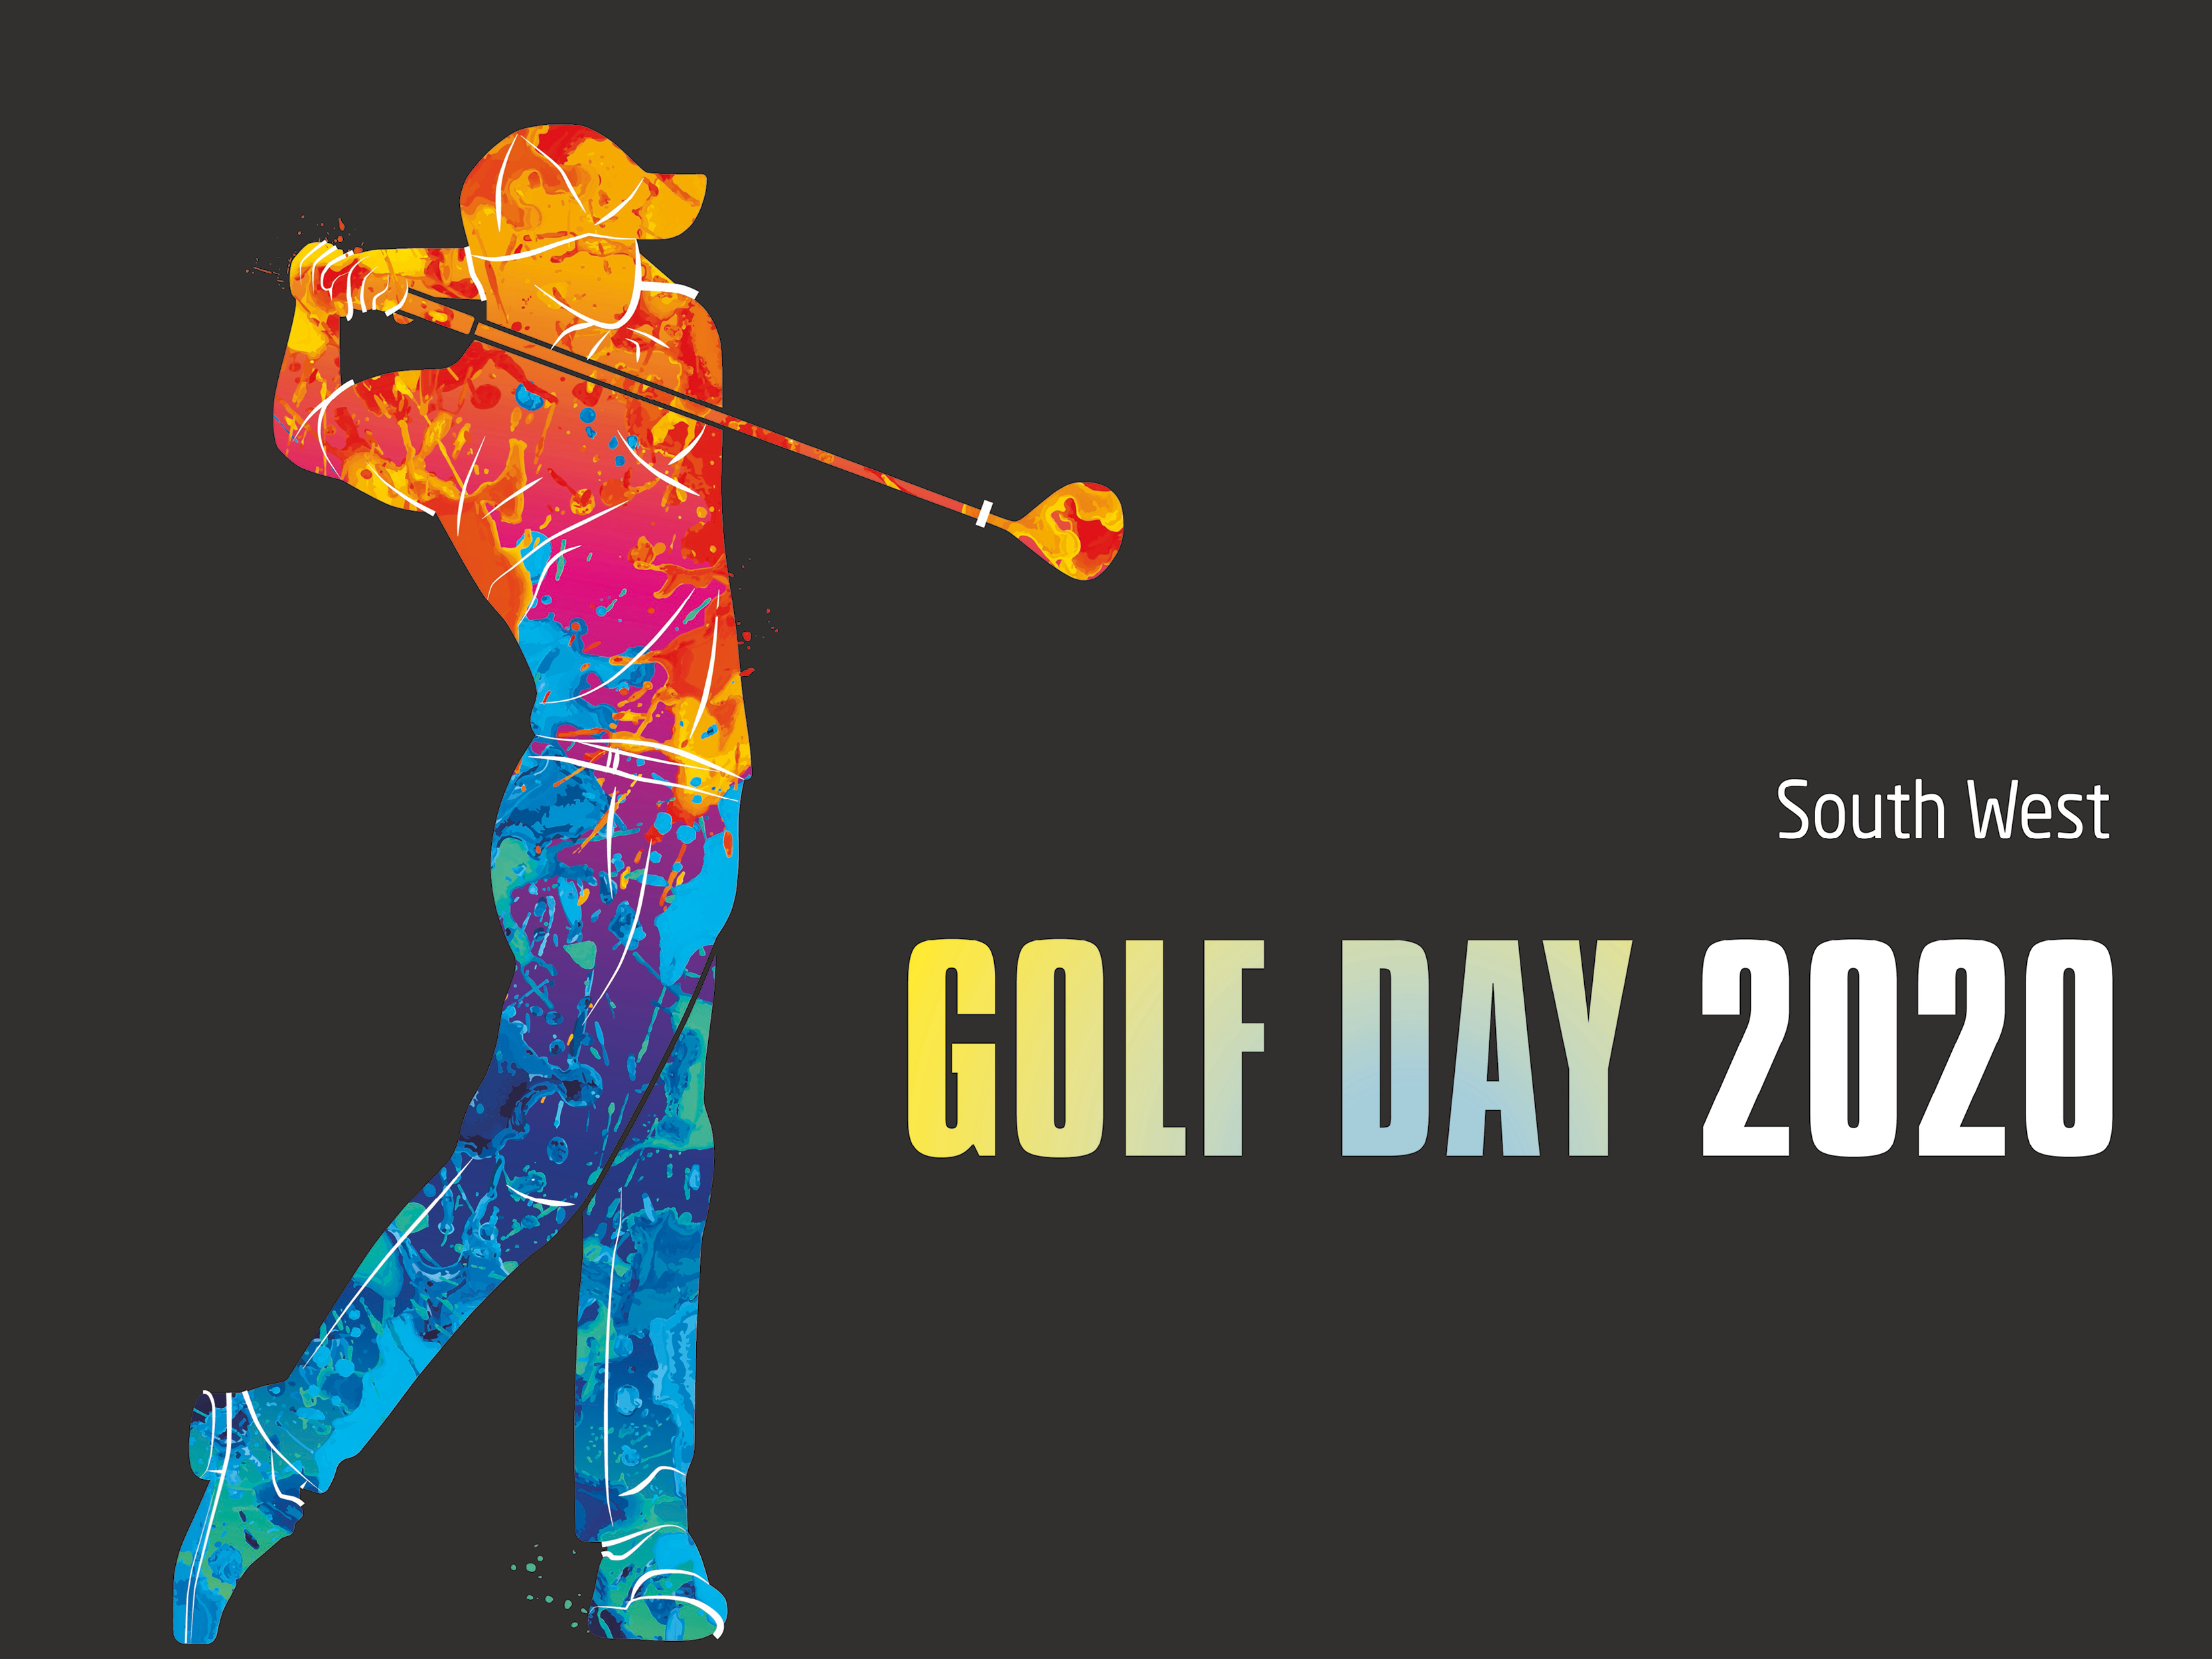 South West Golf Day 2020